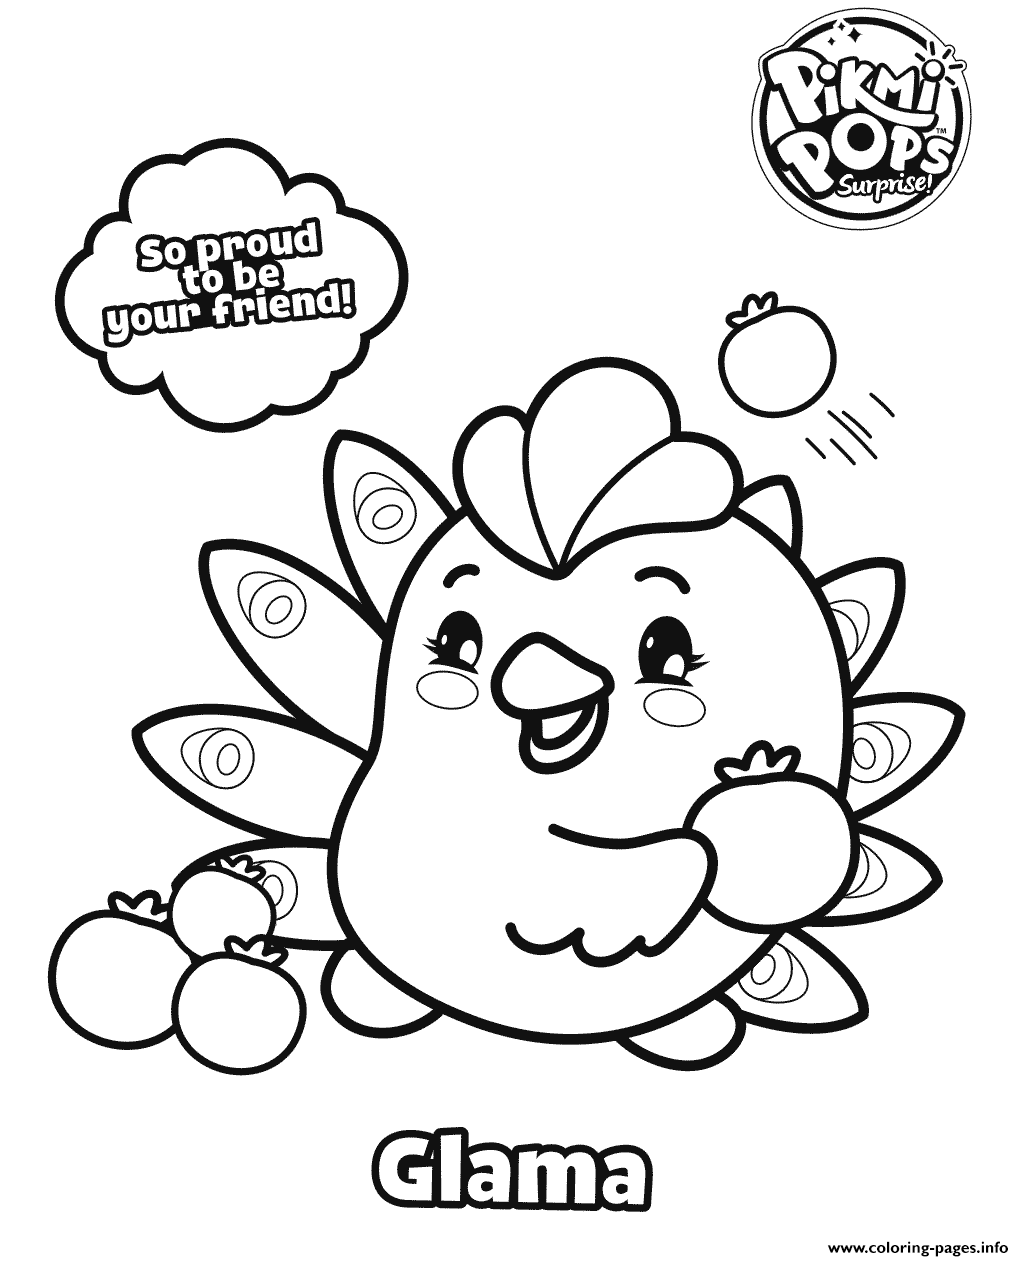 pikmi pops coloring pages Pikmi Pops Glama Coloring Pages Printable pikmi pops coloring pages